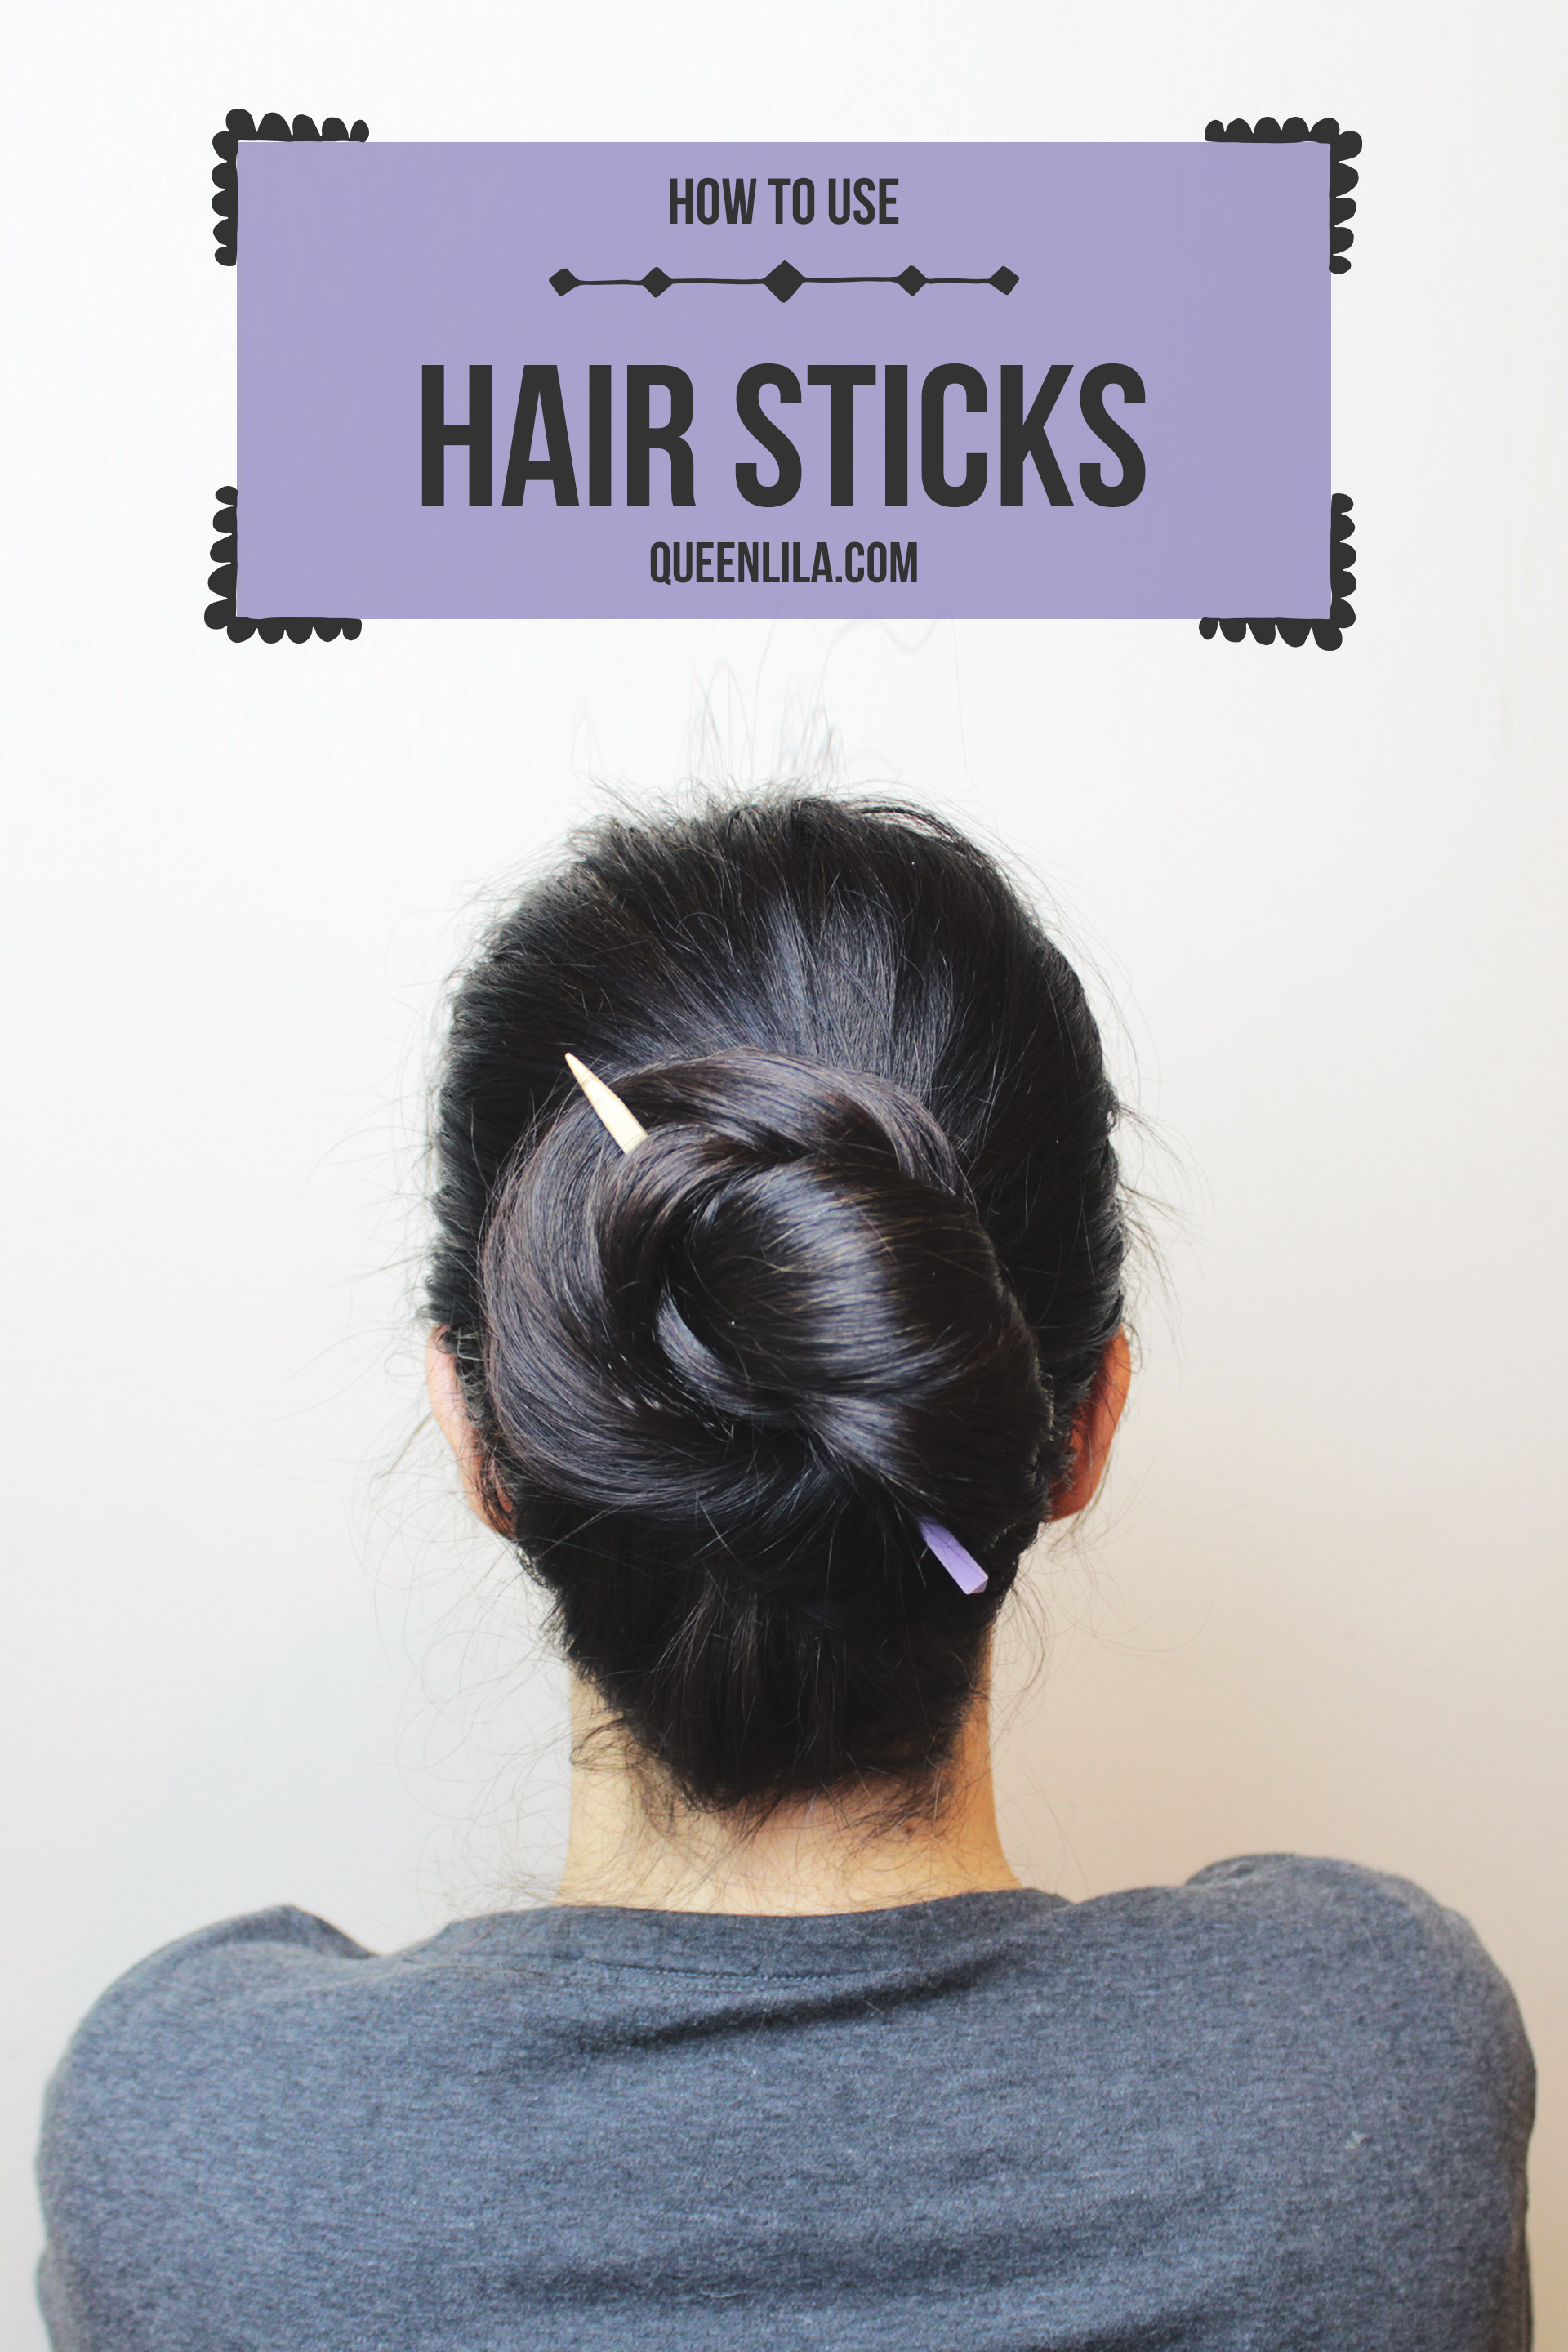 How to use hair sticks!